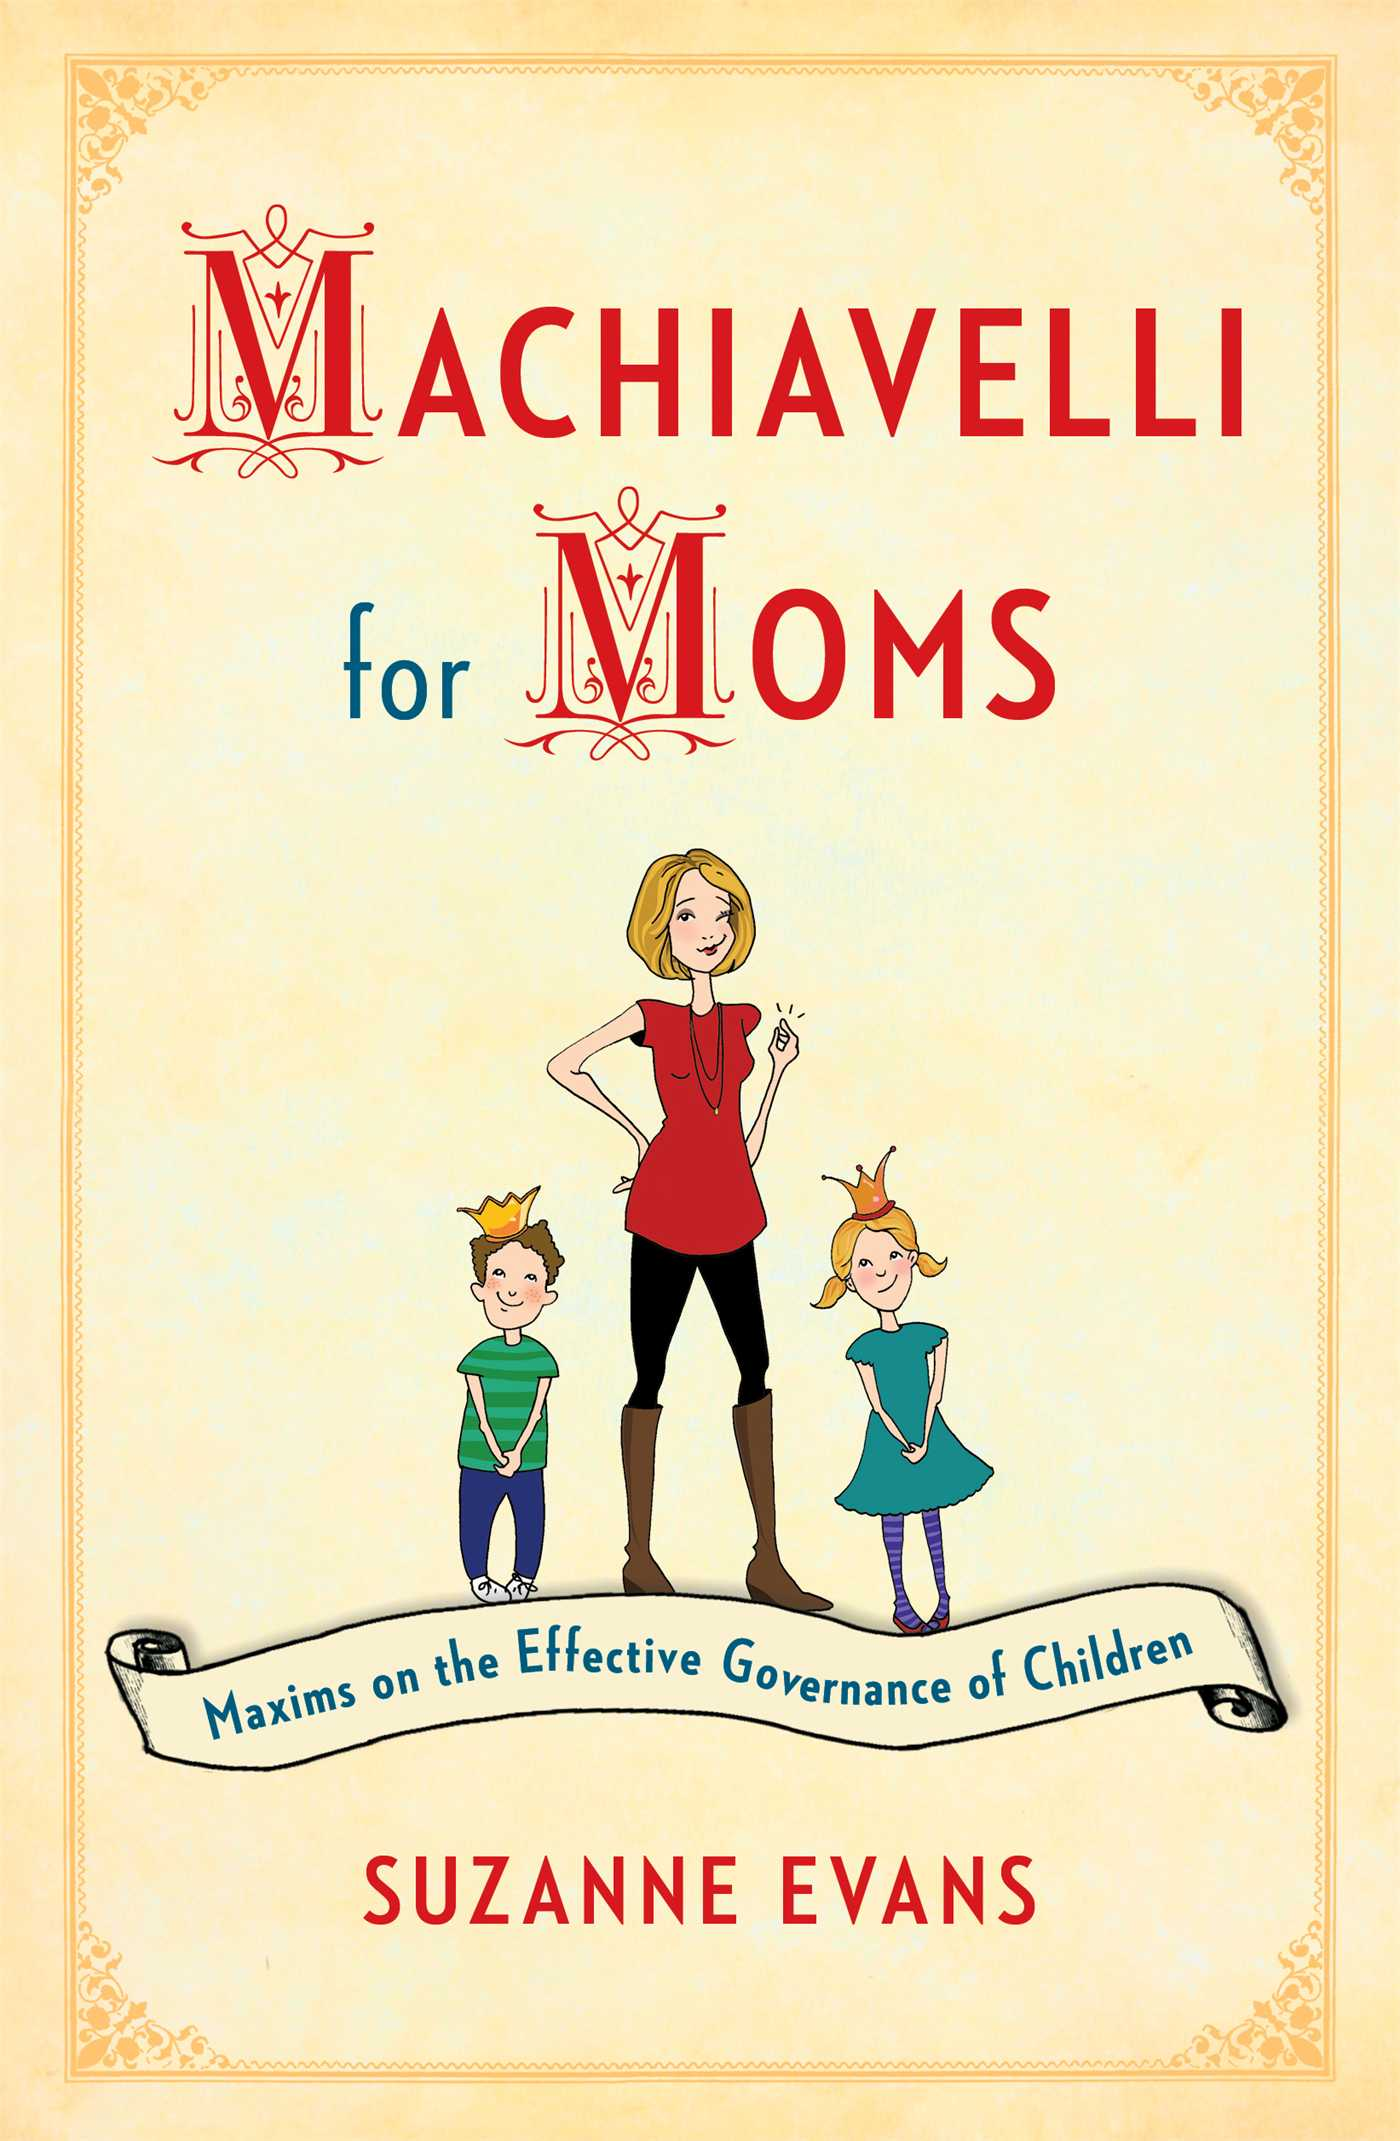 Machiavelli-for-moms-9781451699586_hr